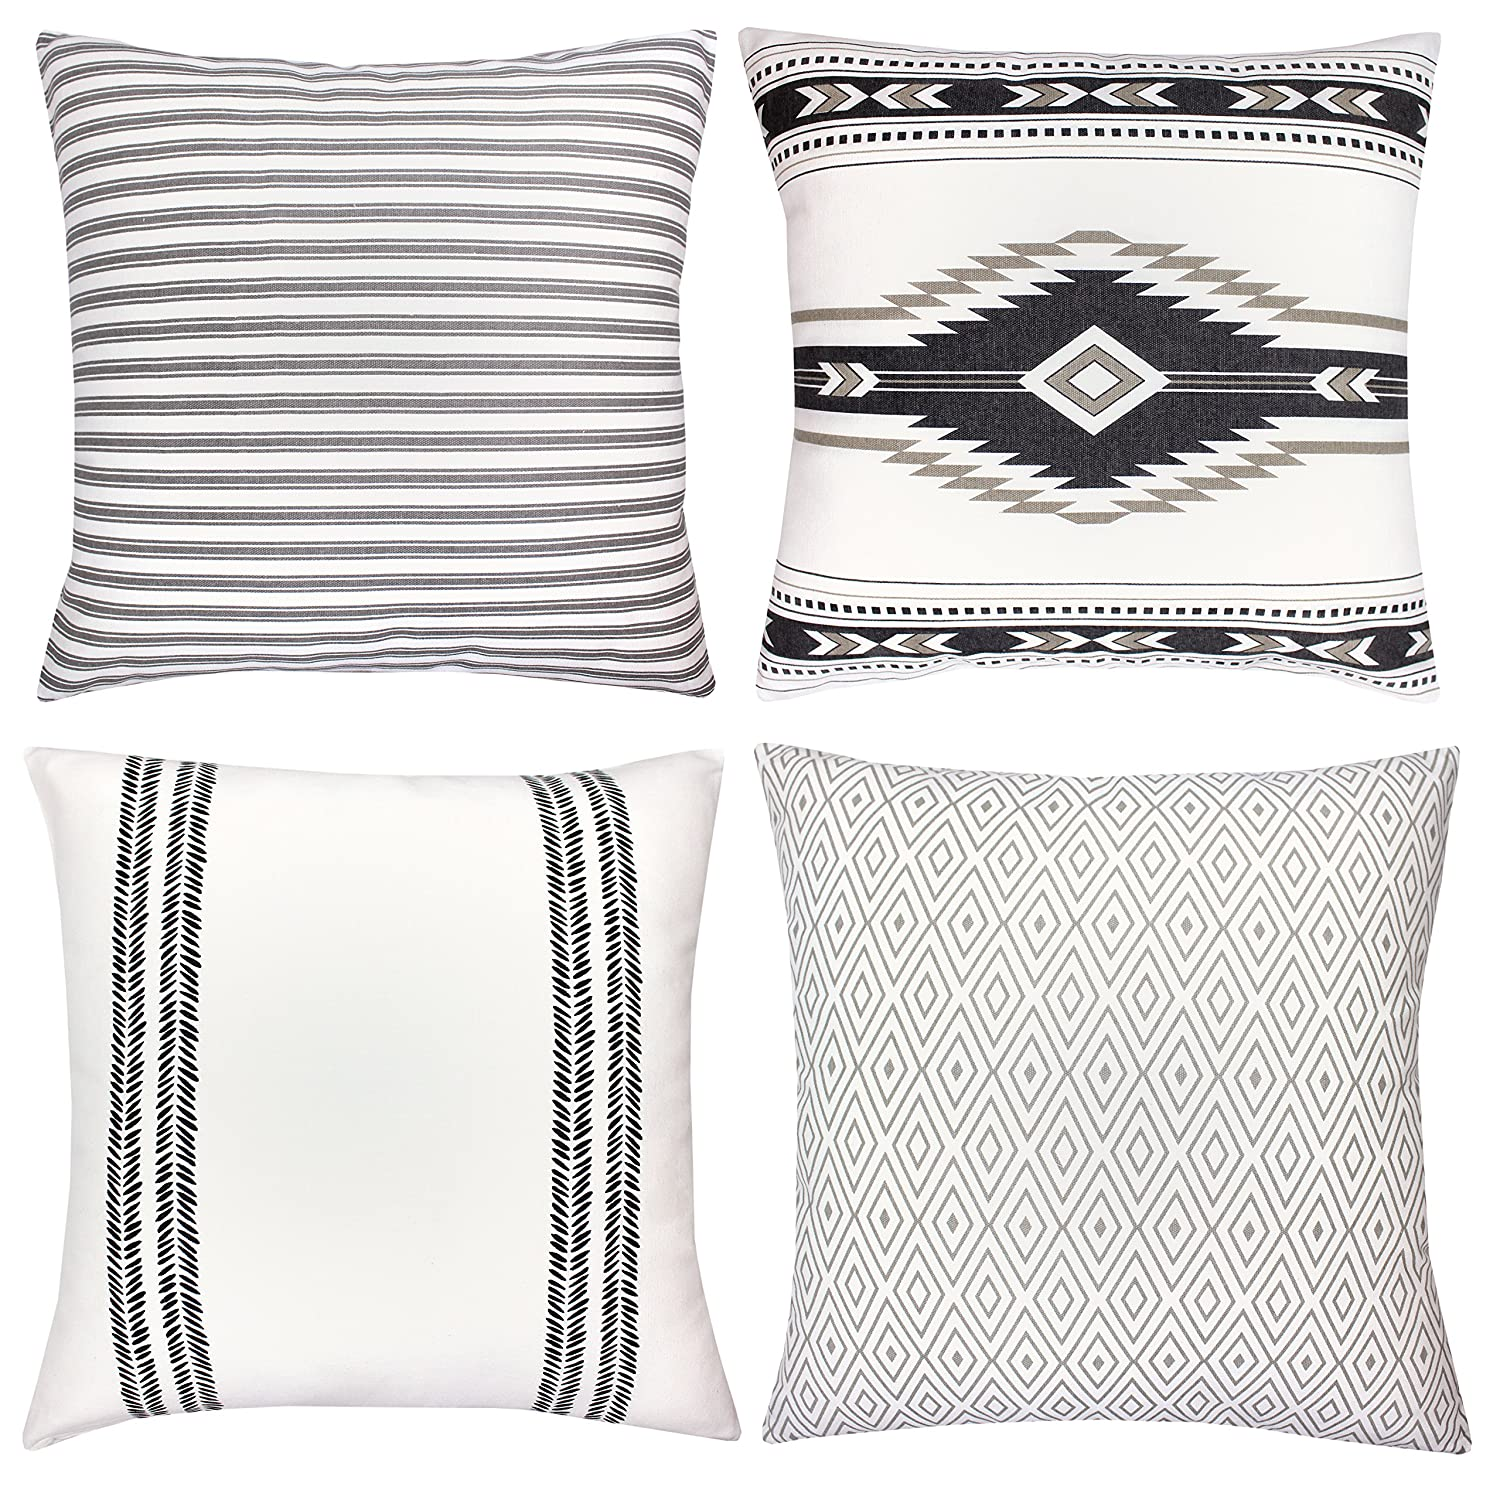 Amazon.com: Woven Nook Decorative Throw Pillow Covers ONLY for Couch ...